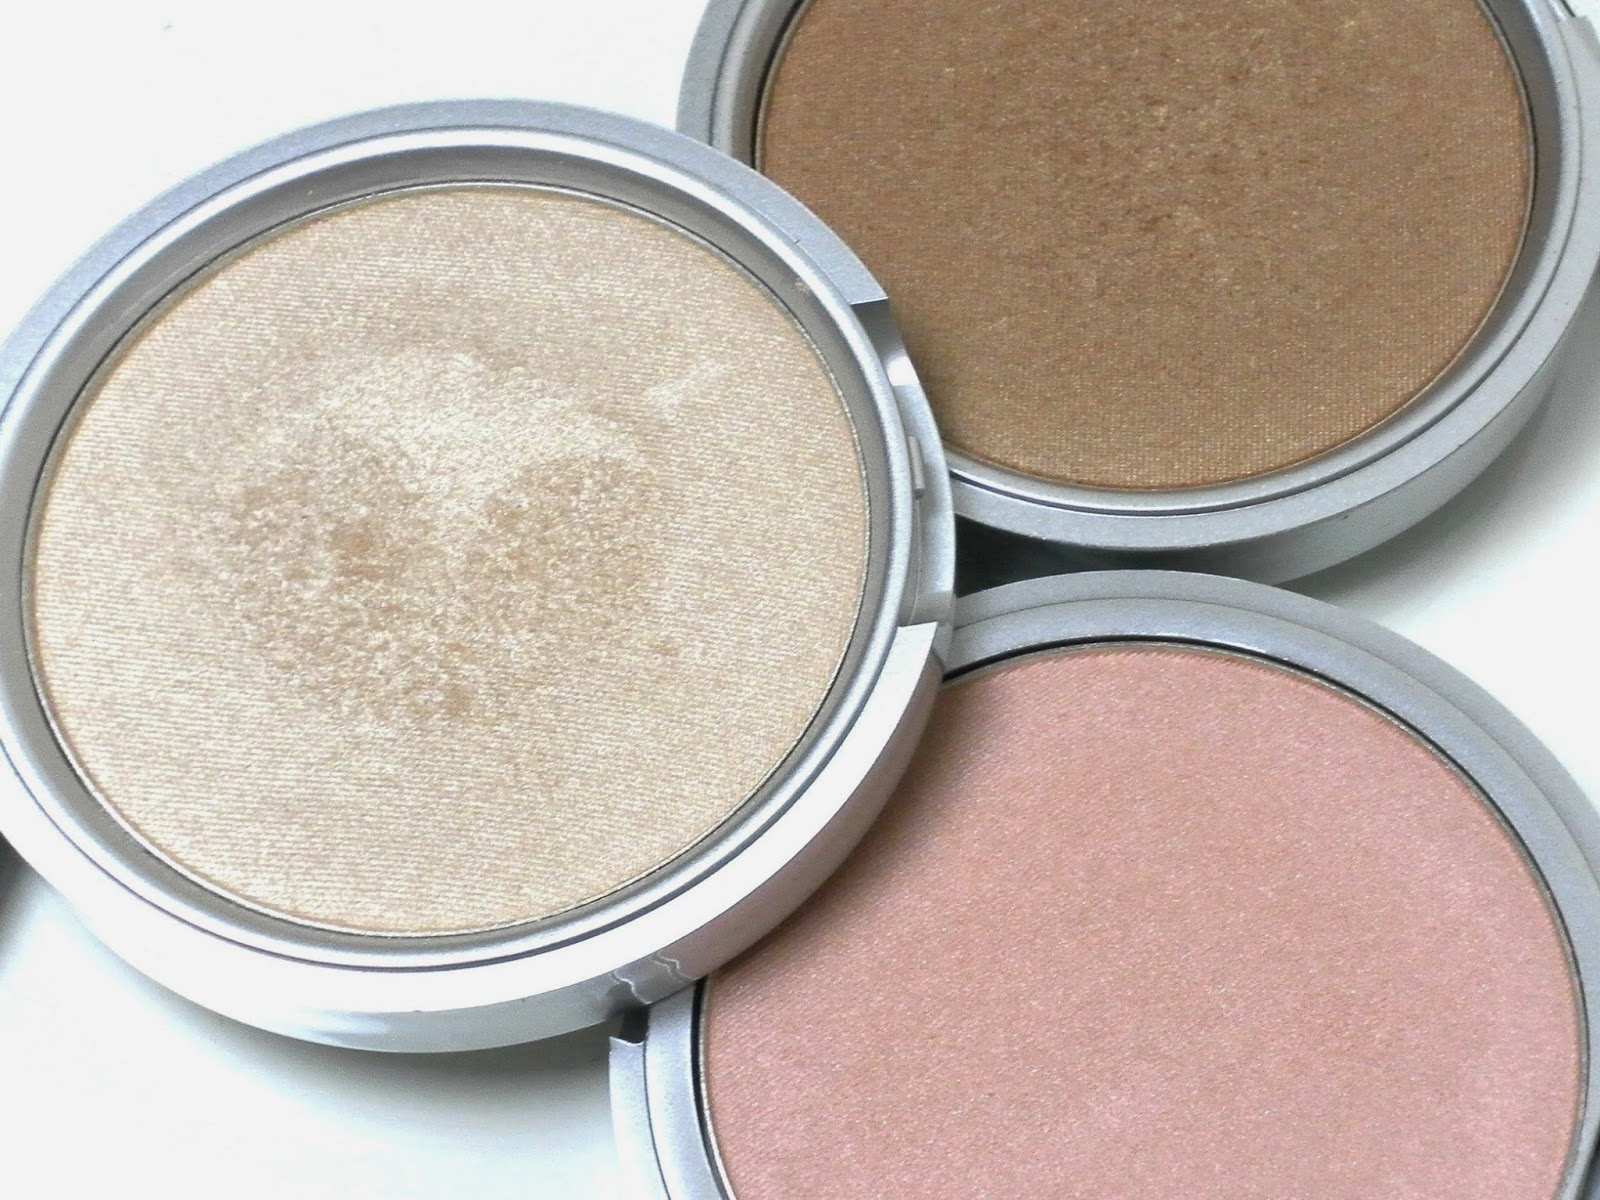 theBalm Mary-Lou Manizer, Betty-Lou Manizer & Cindy-Lou Manizer